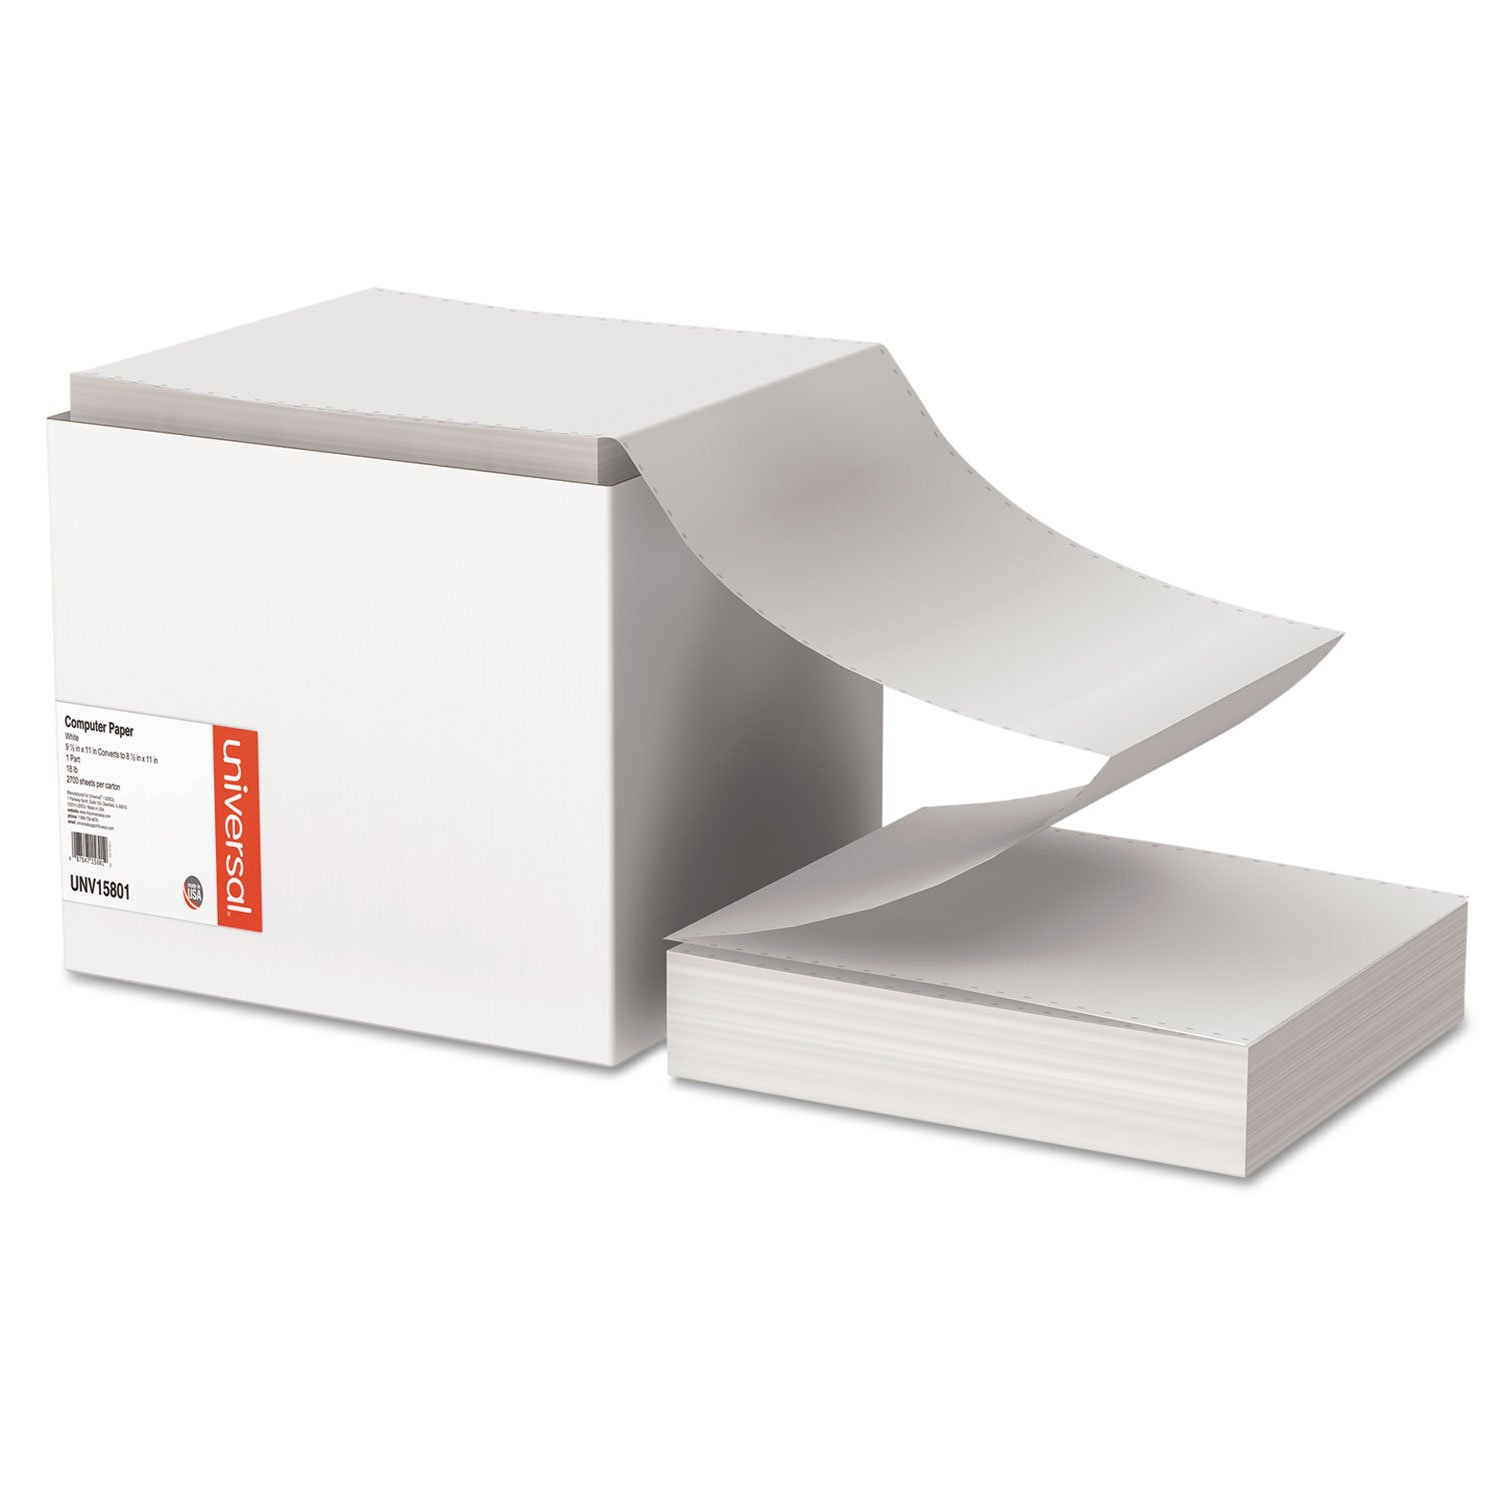 Universal 15801 Computer Paper, 18lb, 9-1/2 x 11, Letter Trim Perforations, White, 2700 Sheets by Universal